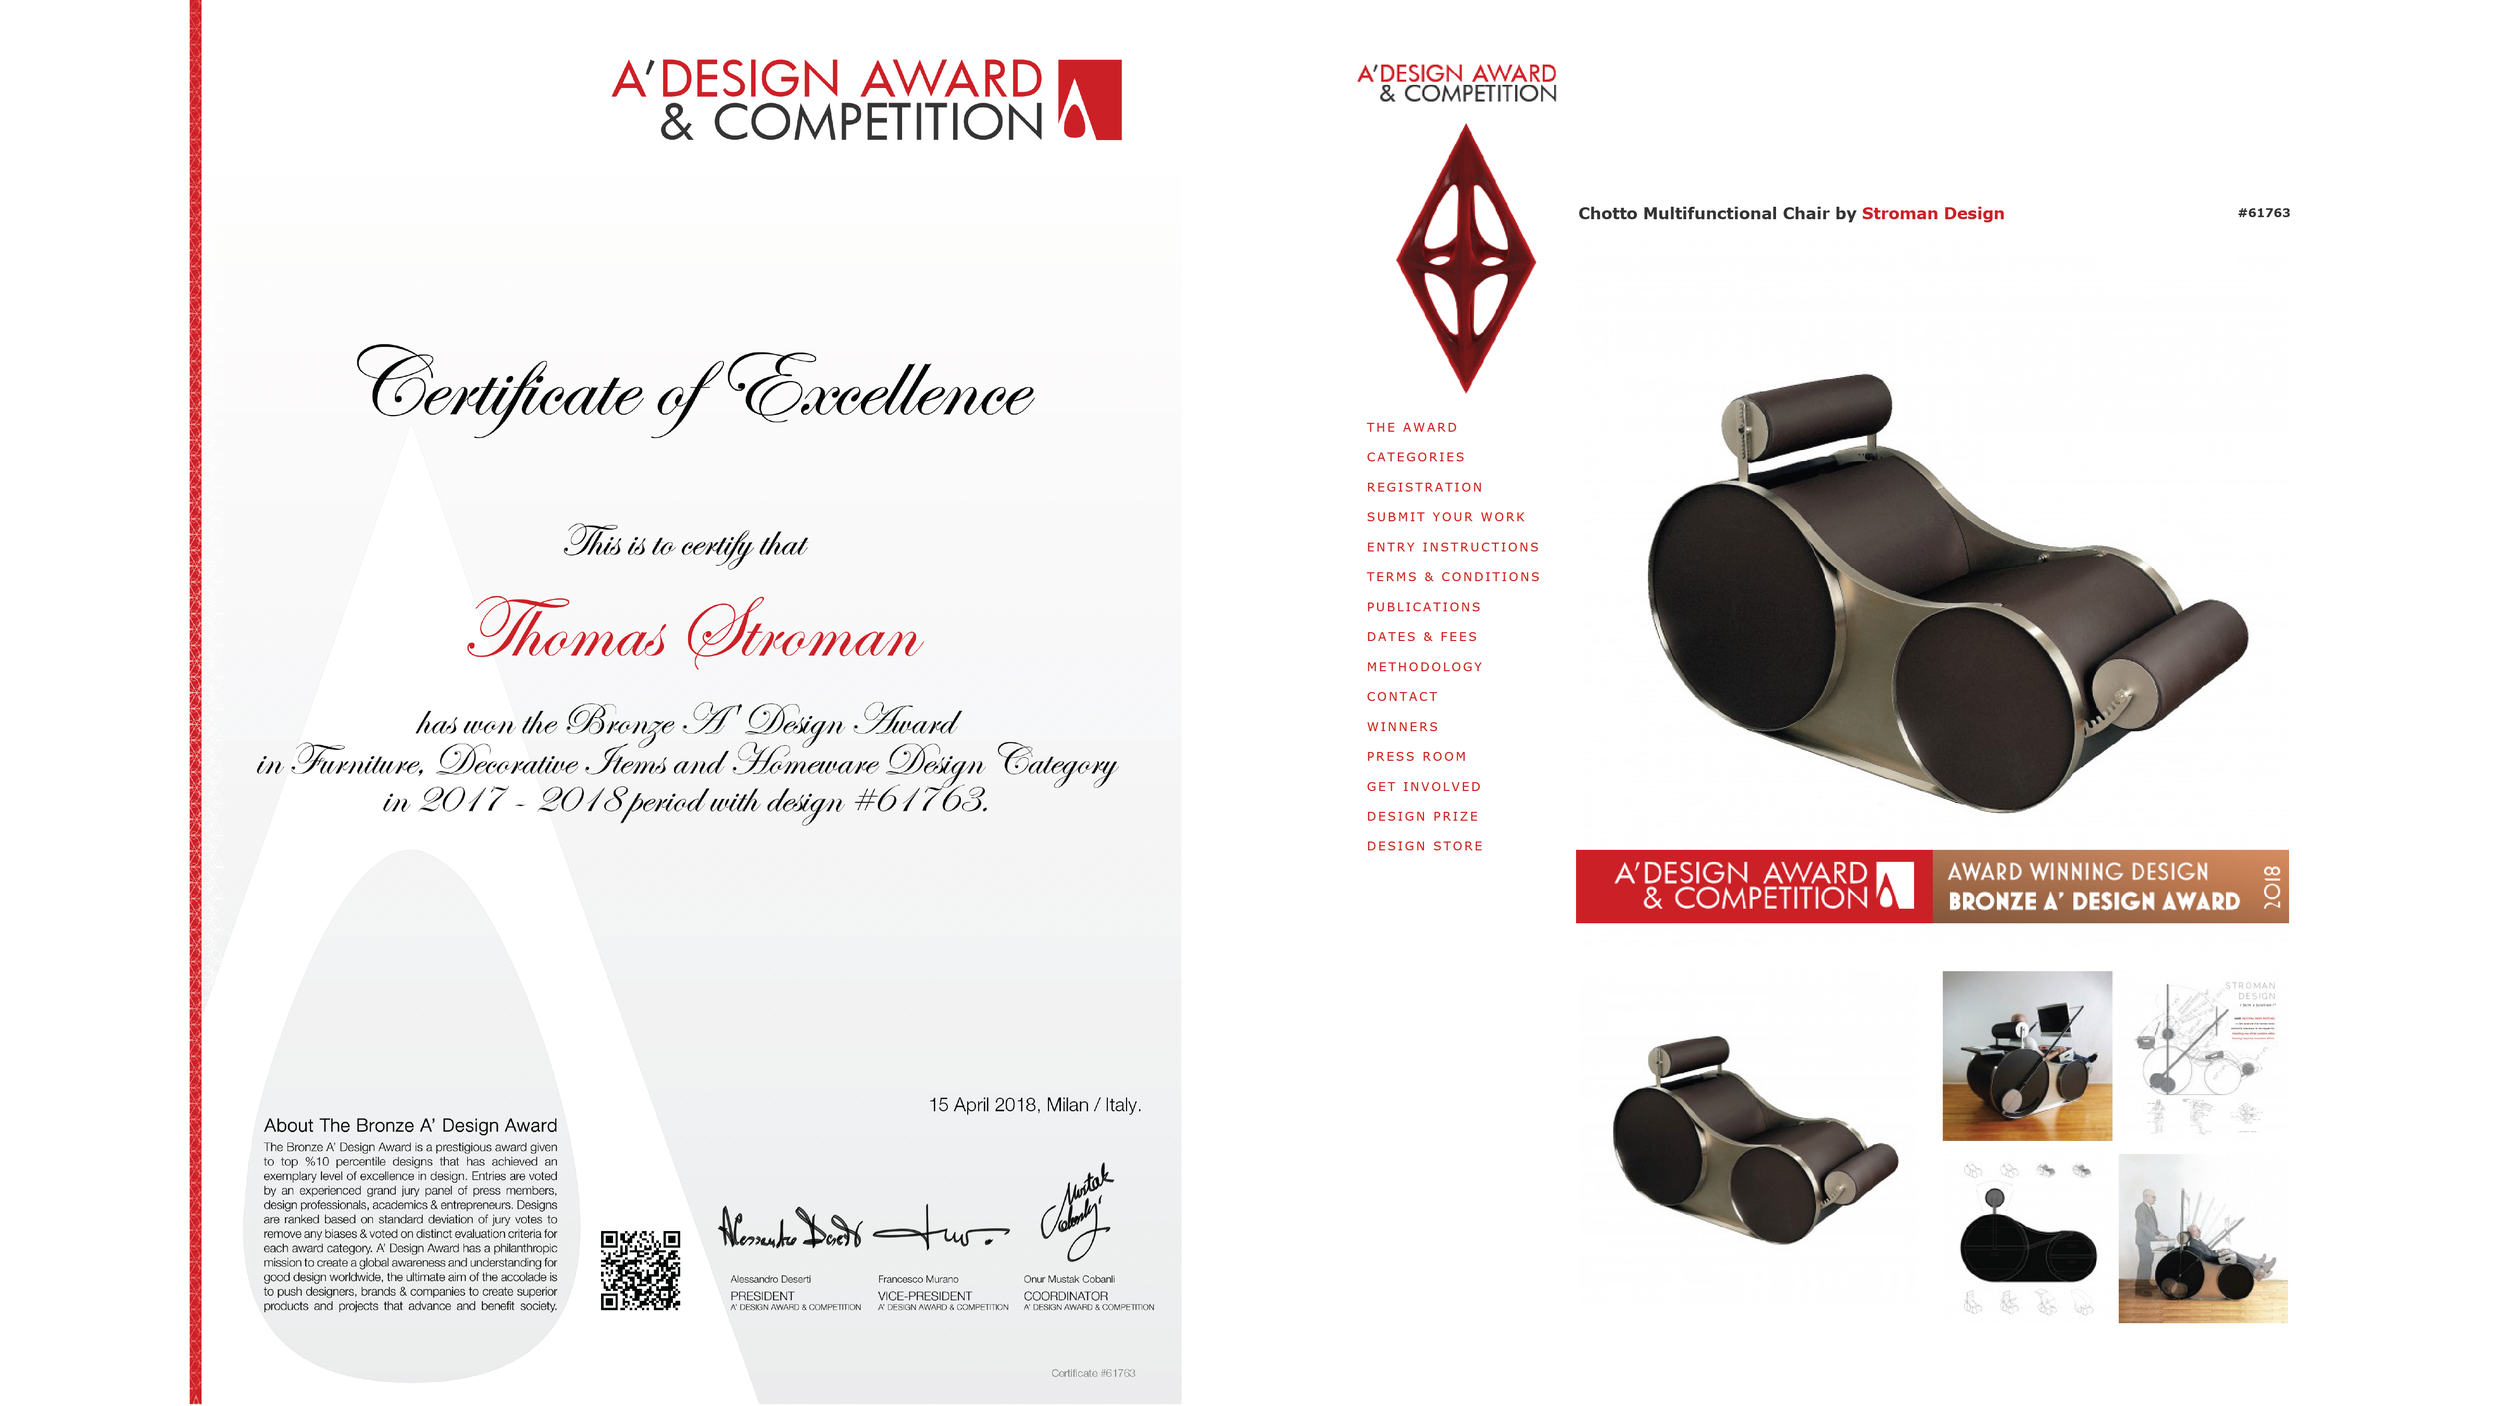 """A""""Design Award Announcement for Stroman Design Entry Chotto™ : Multifunctional Chair 2017-2018 ( April 15, 2018 )"""